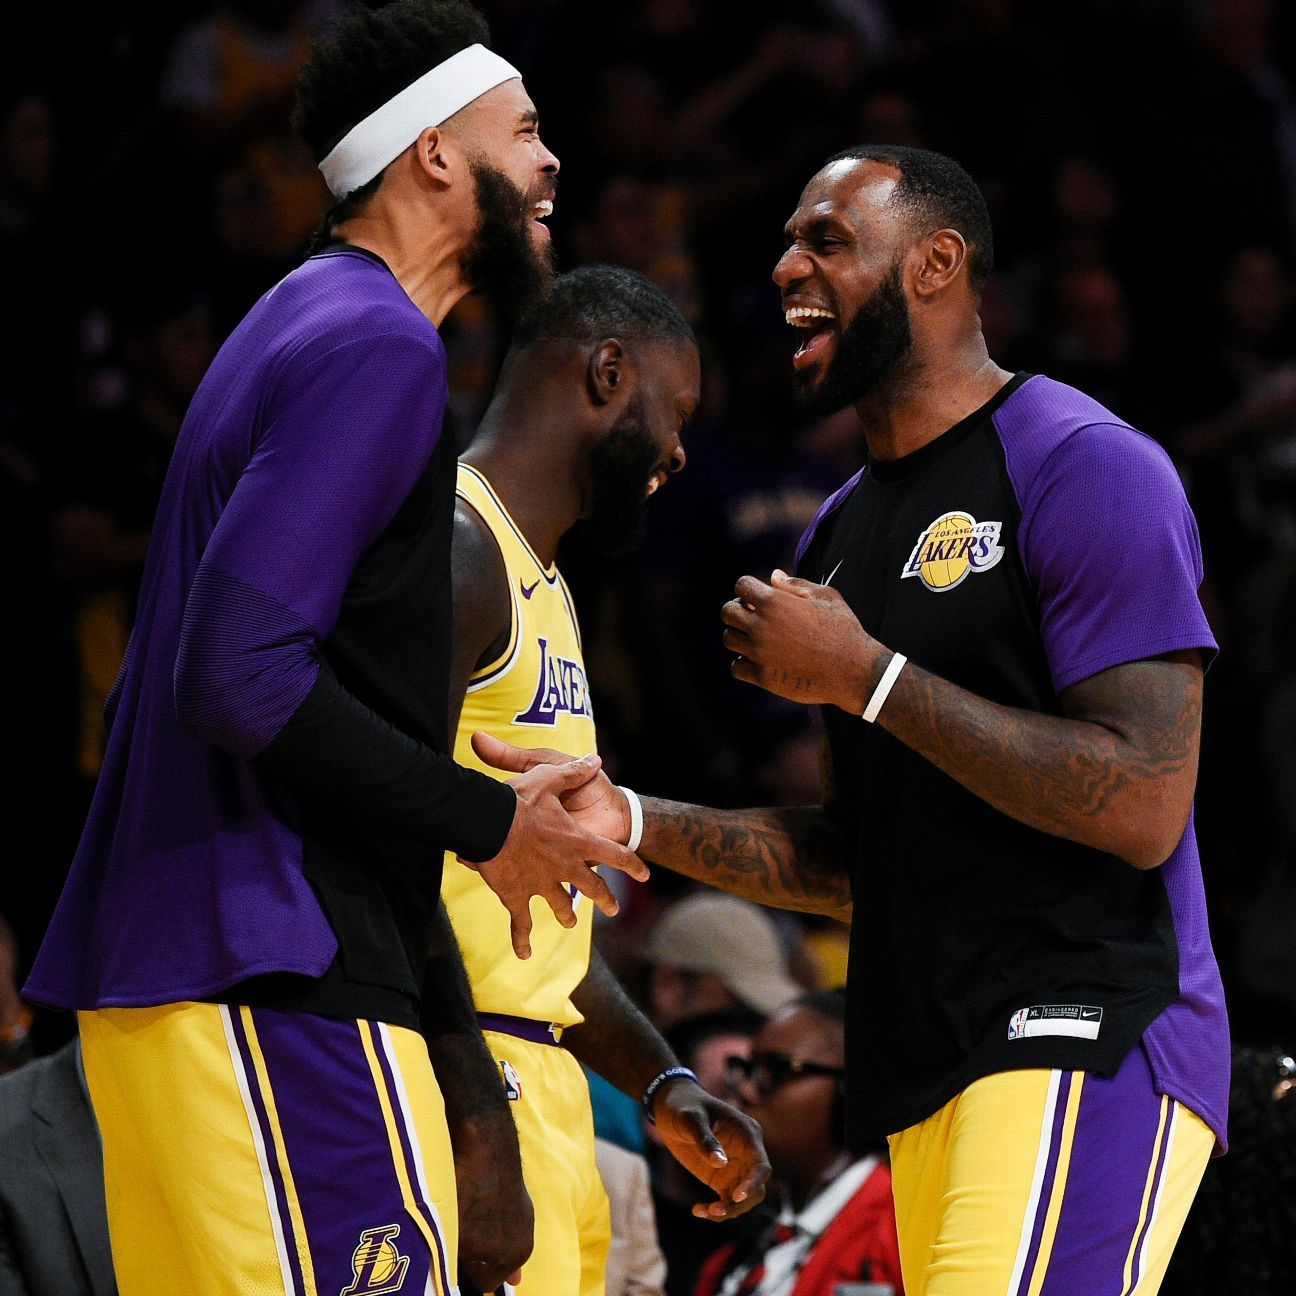 Kendrick Lamar hits on positive topics with Lakers